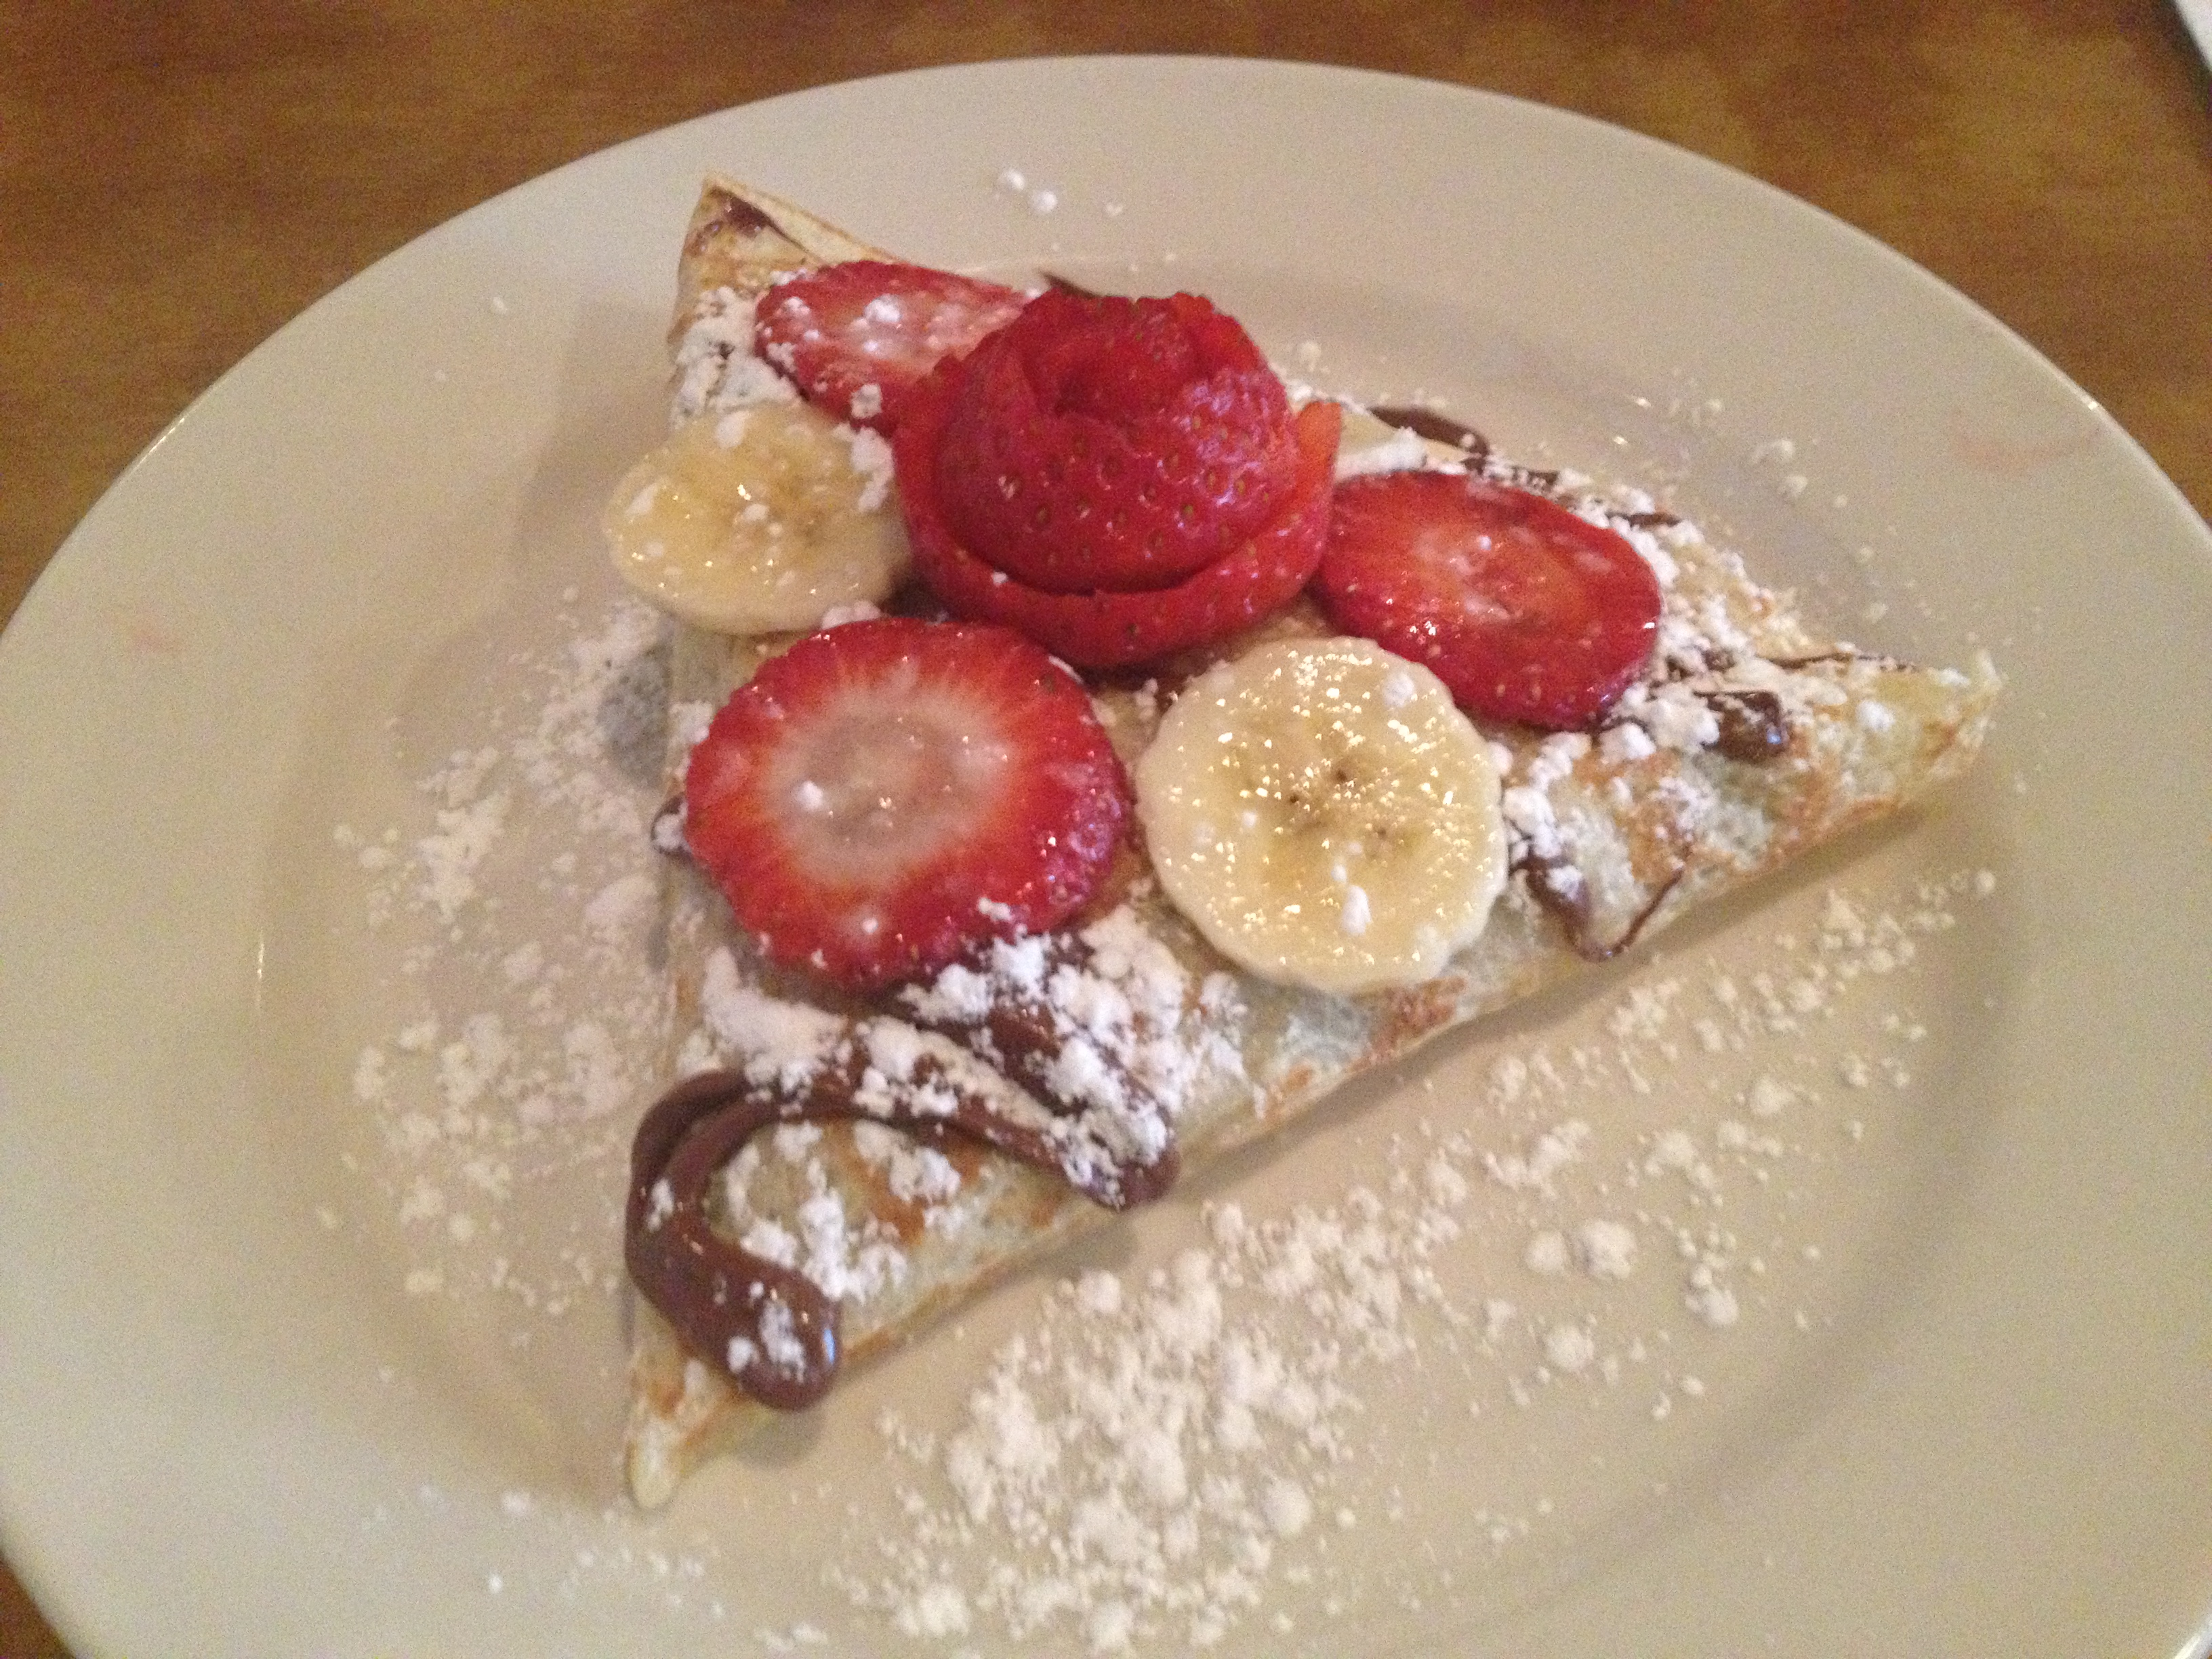 Yorkville Crêperie's Country Crêpe (Nutella, Strawberries & Banana)